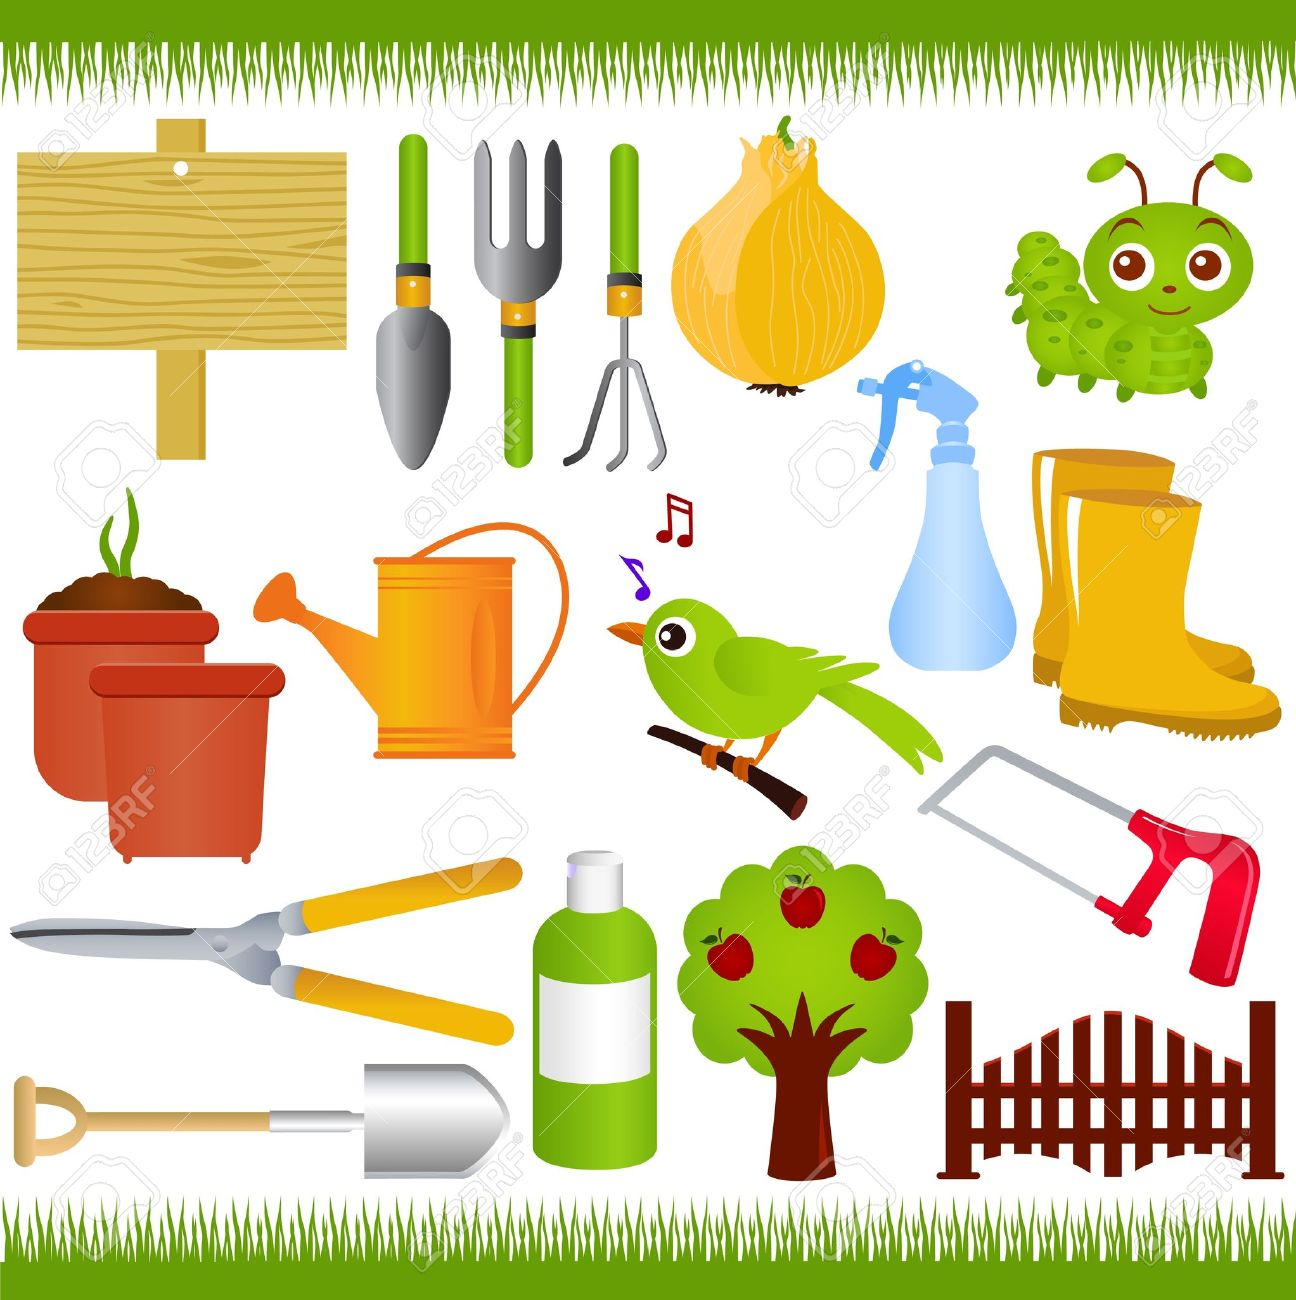 Garden tools clipart clipground for Gardening tools clipart